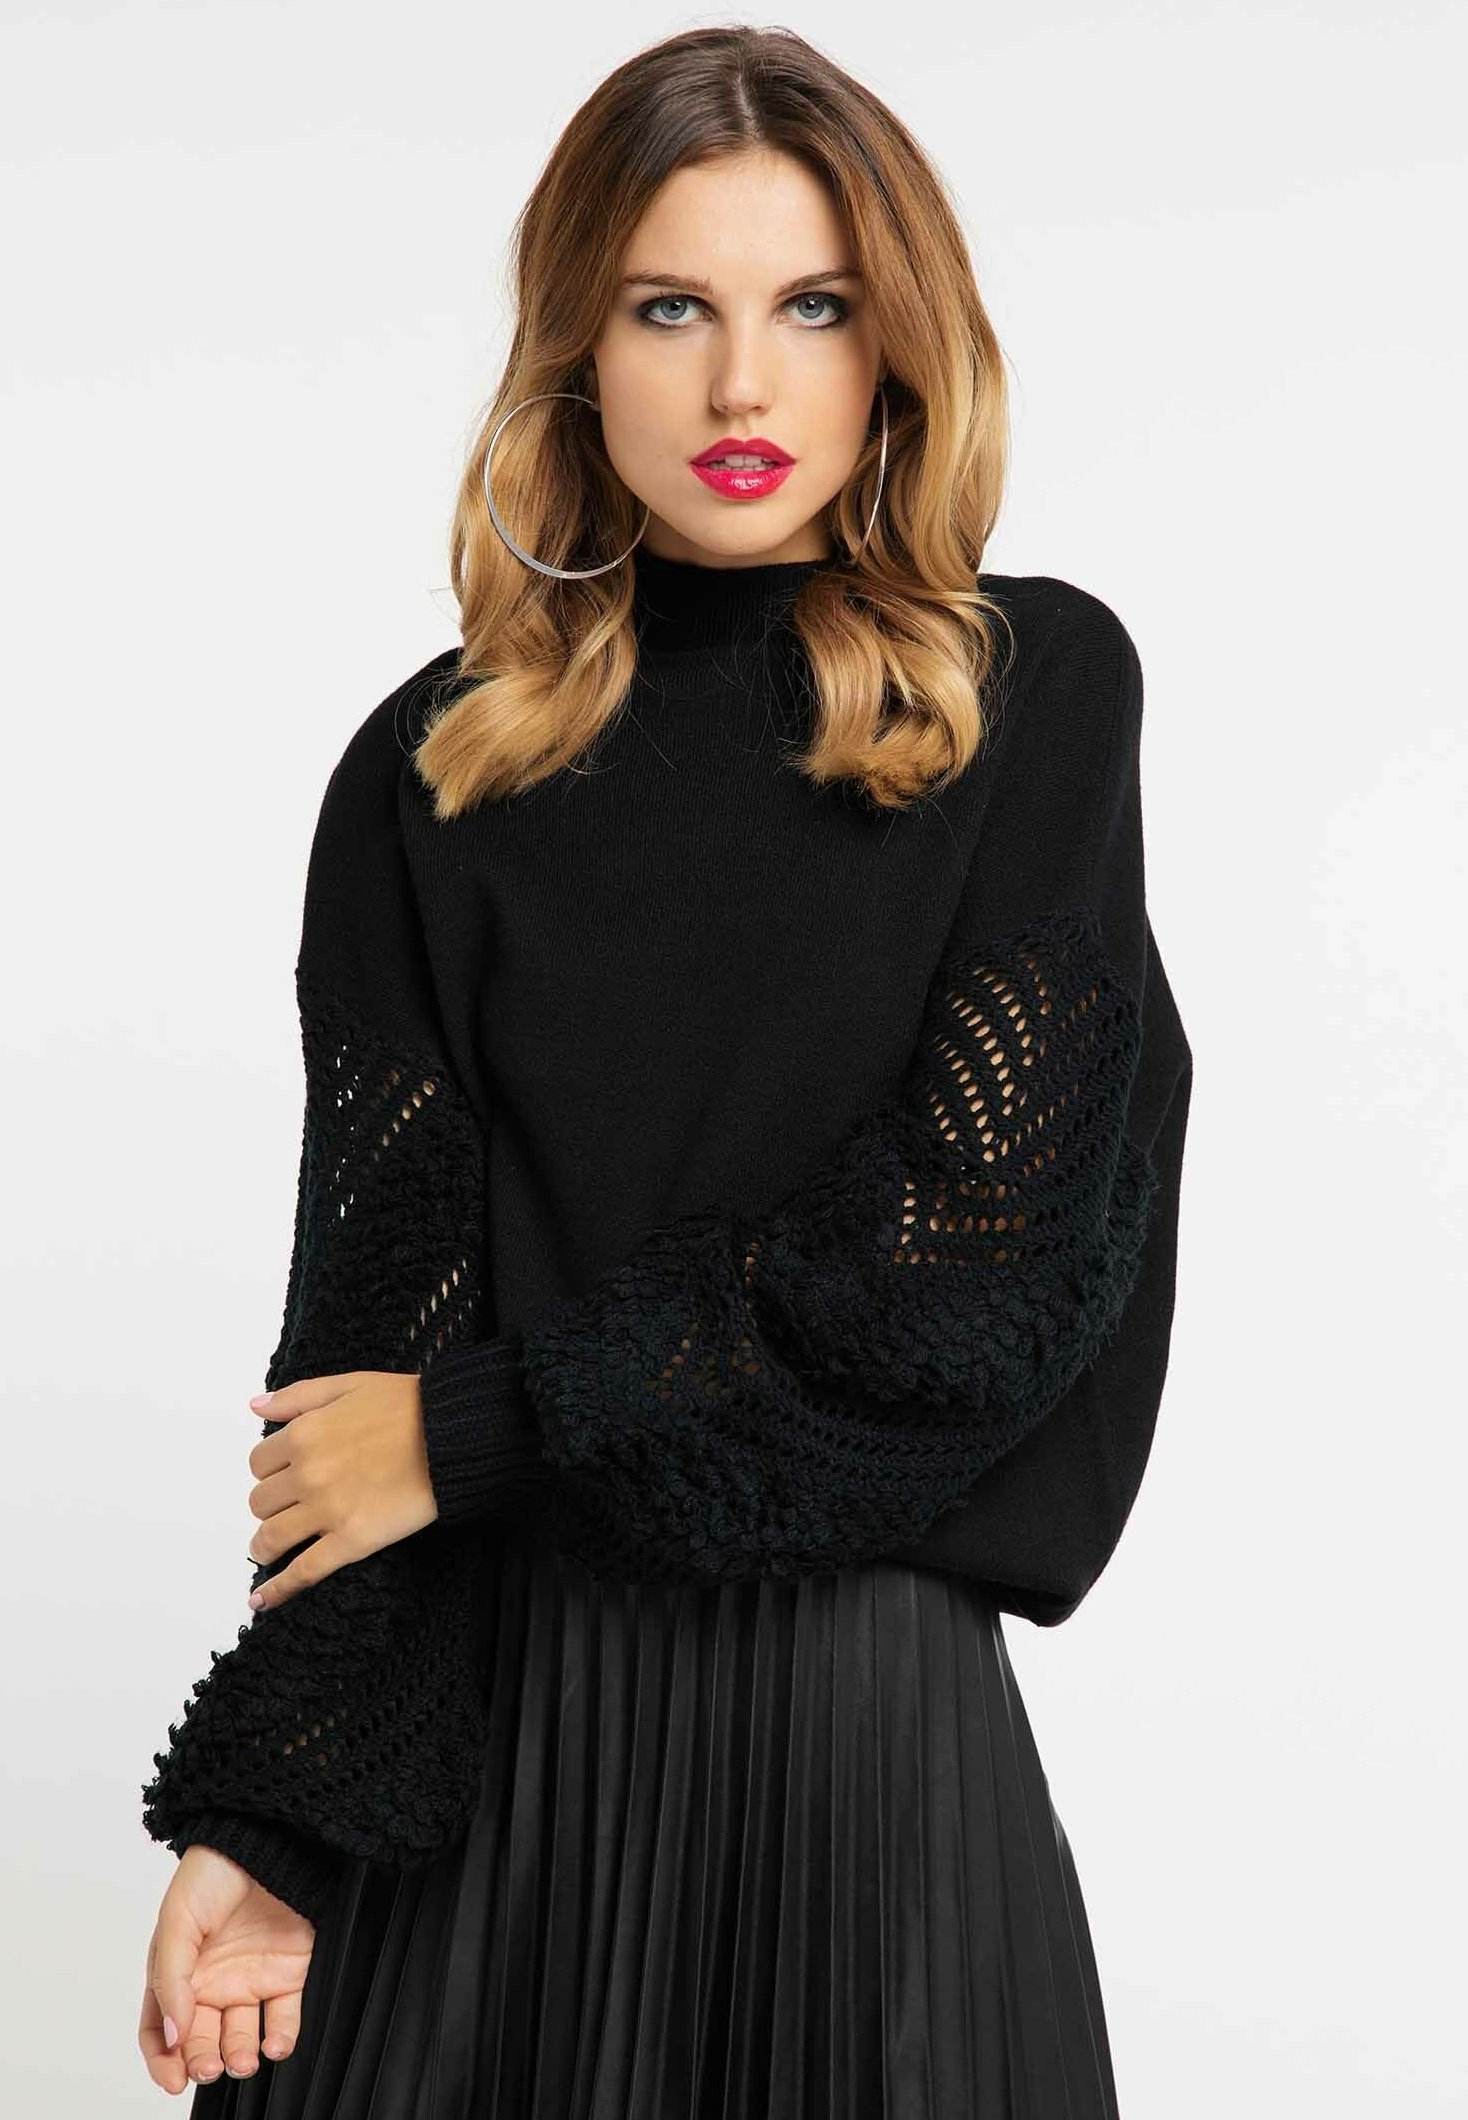 Sale Women's Clothing faina Jumper black d05l6mncn